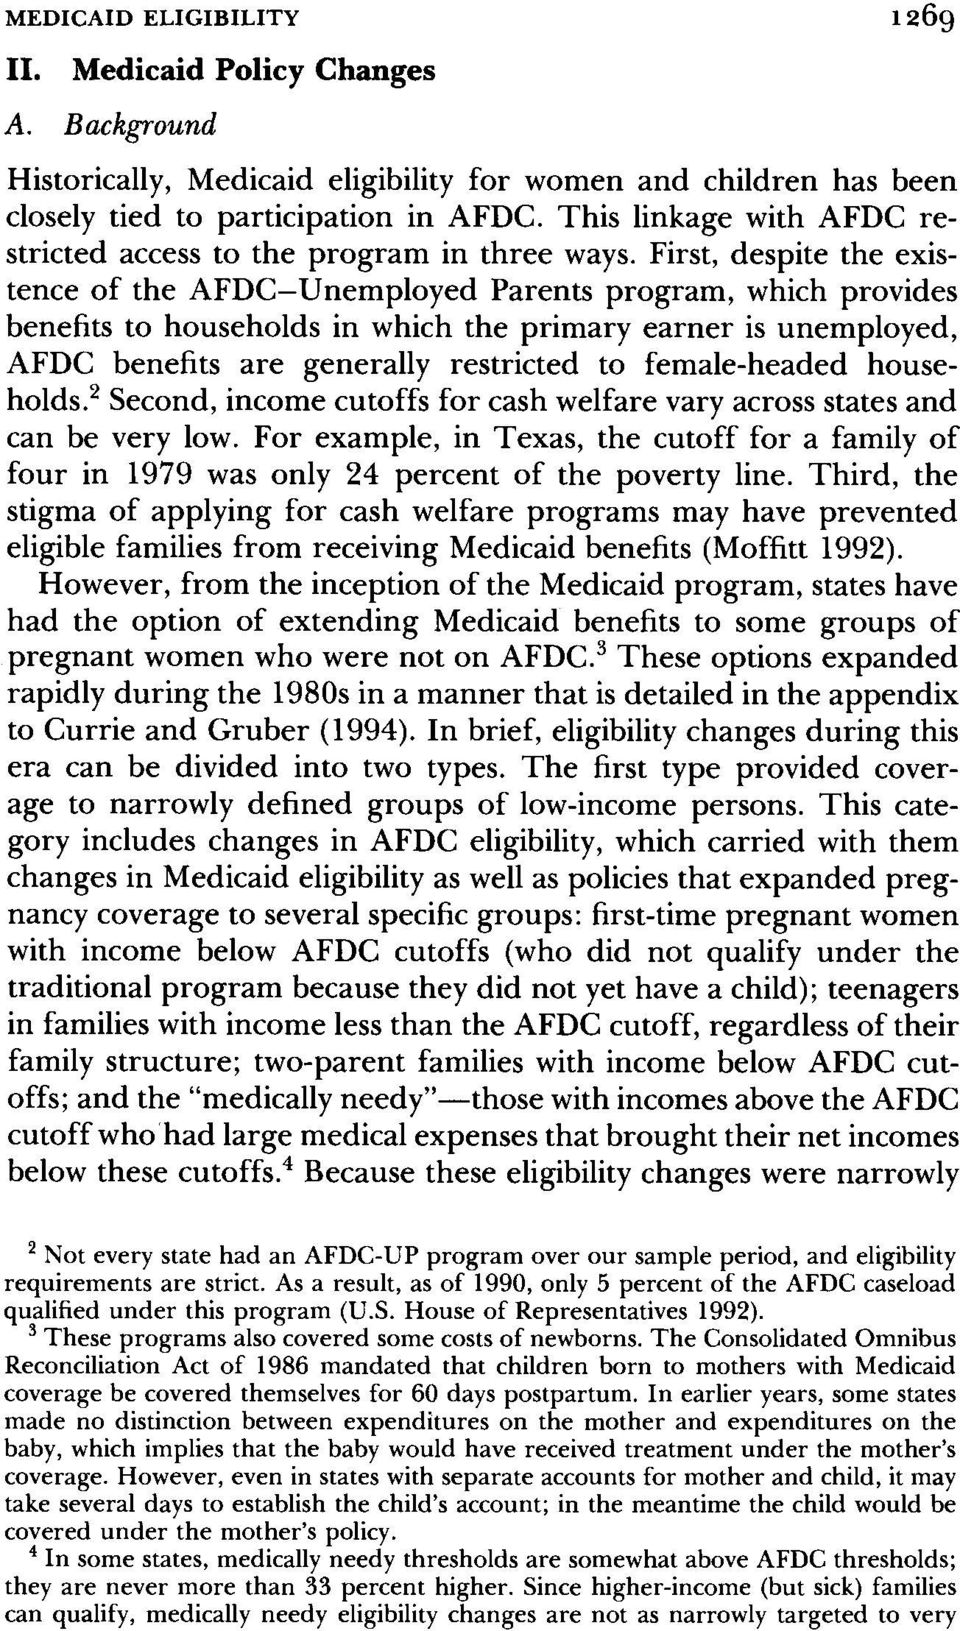 First, despite the existence of the AFDC-Unemployed Parents program, which provides benefits to households in which the primary earner is unemployed, AFDC benefits are generally restricted to